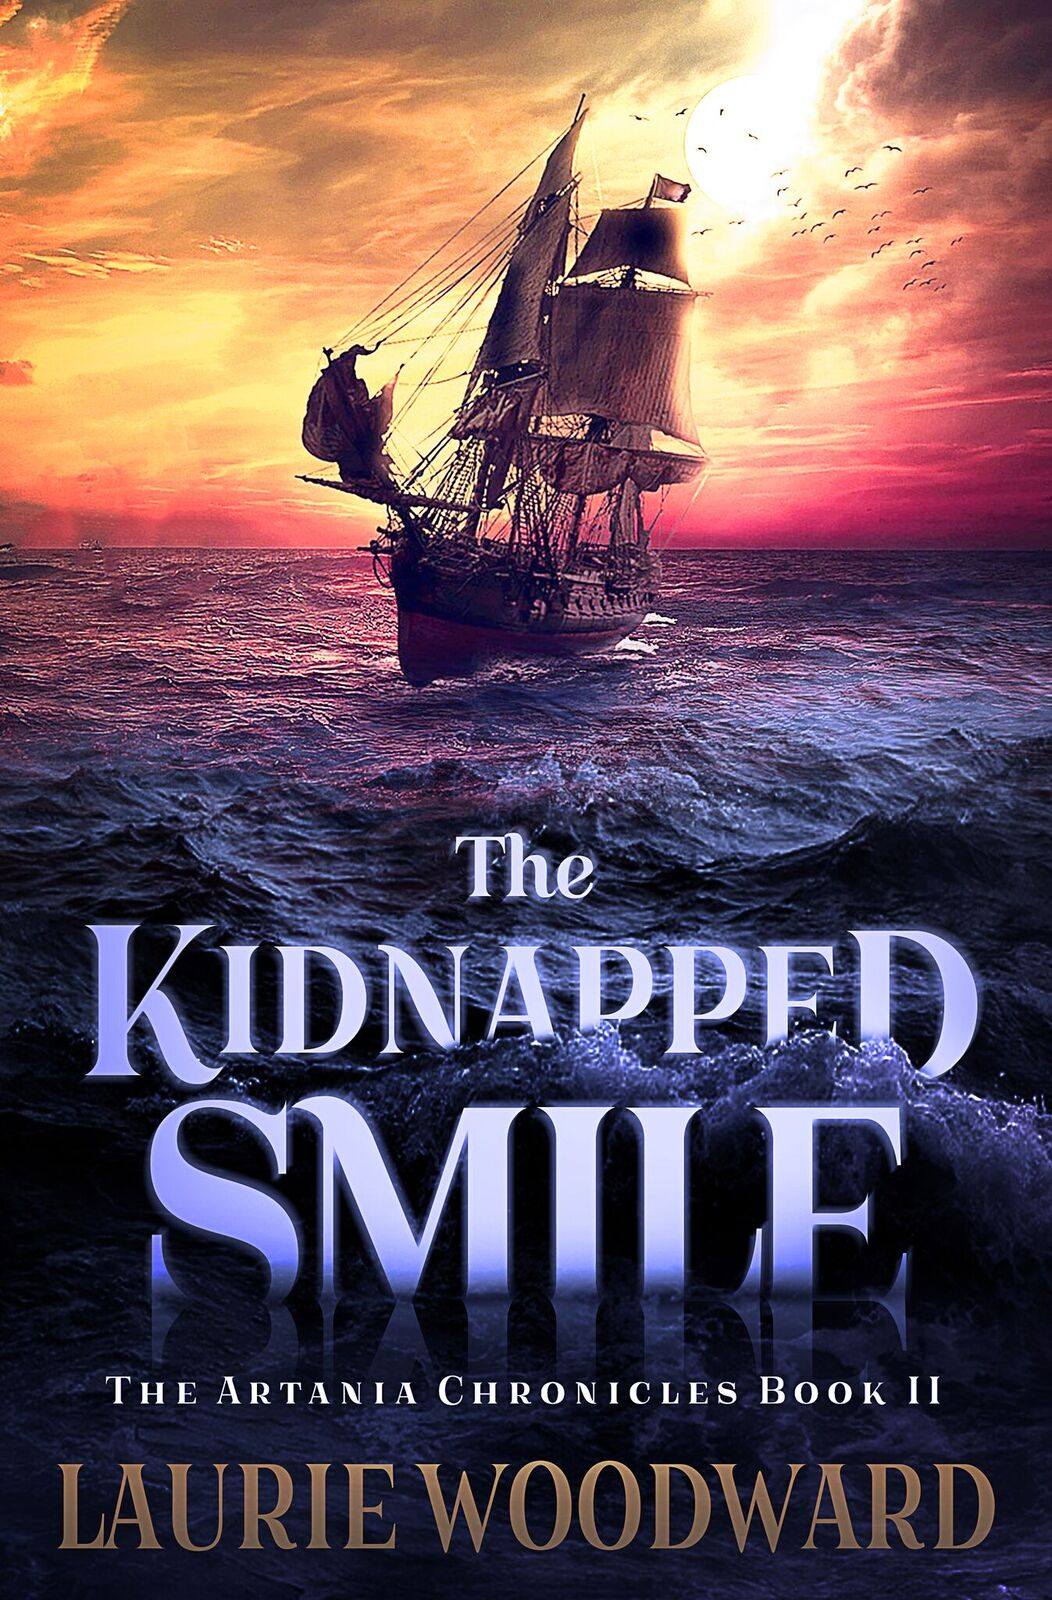 Kidnapped Smile: An Excerpt